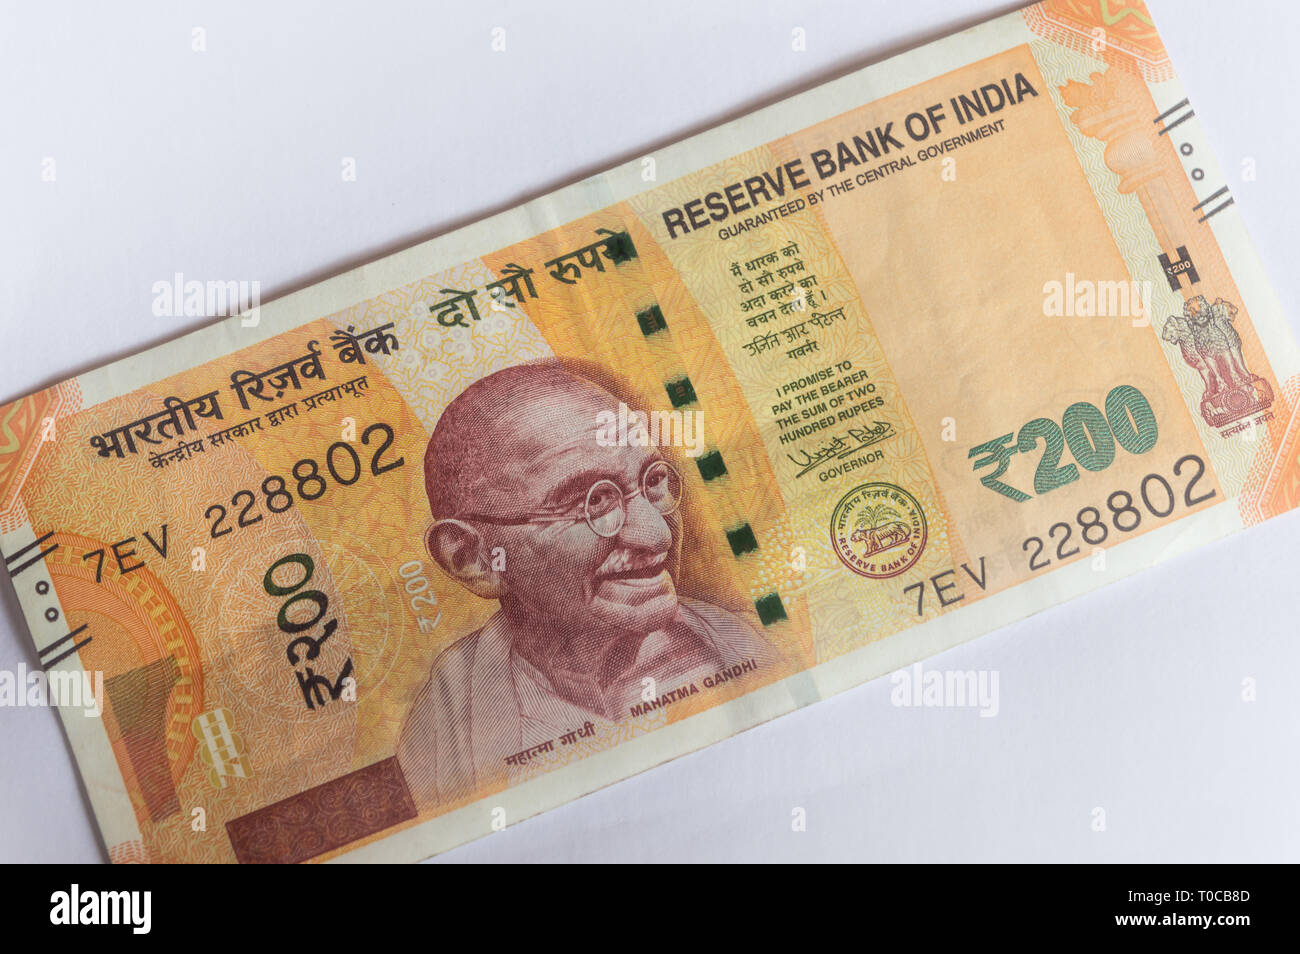 200 Rupee Currency Note Stock Photos & 200 Rupee Currency Note Stock